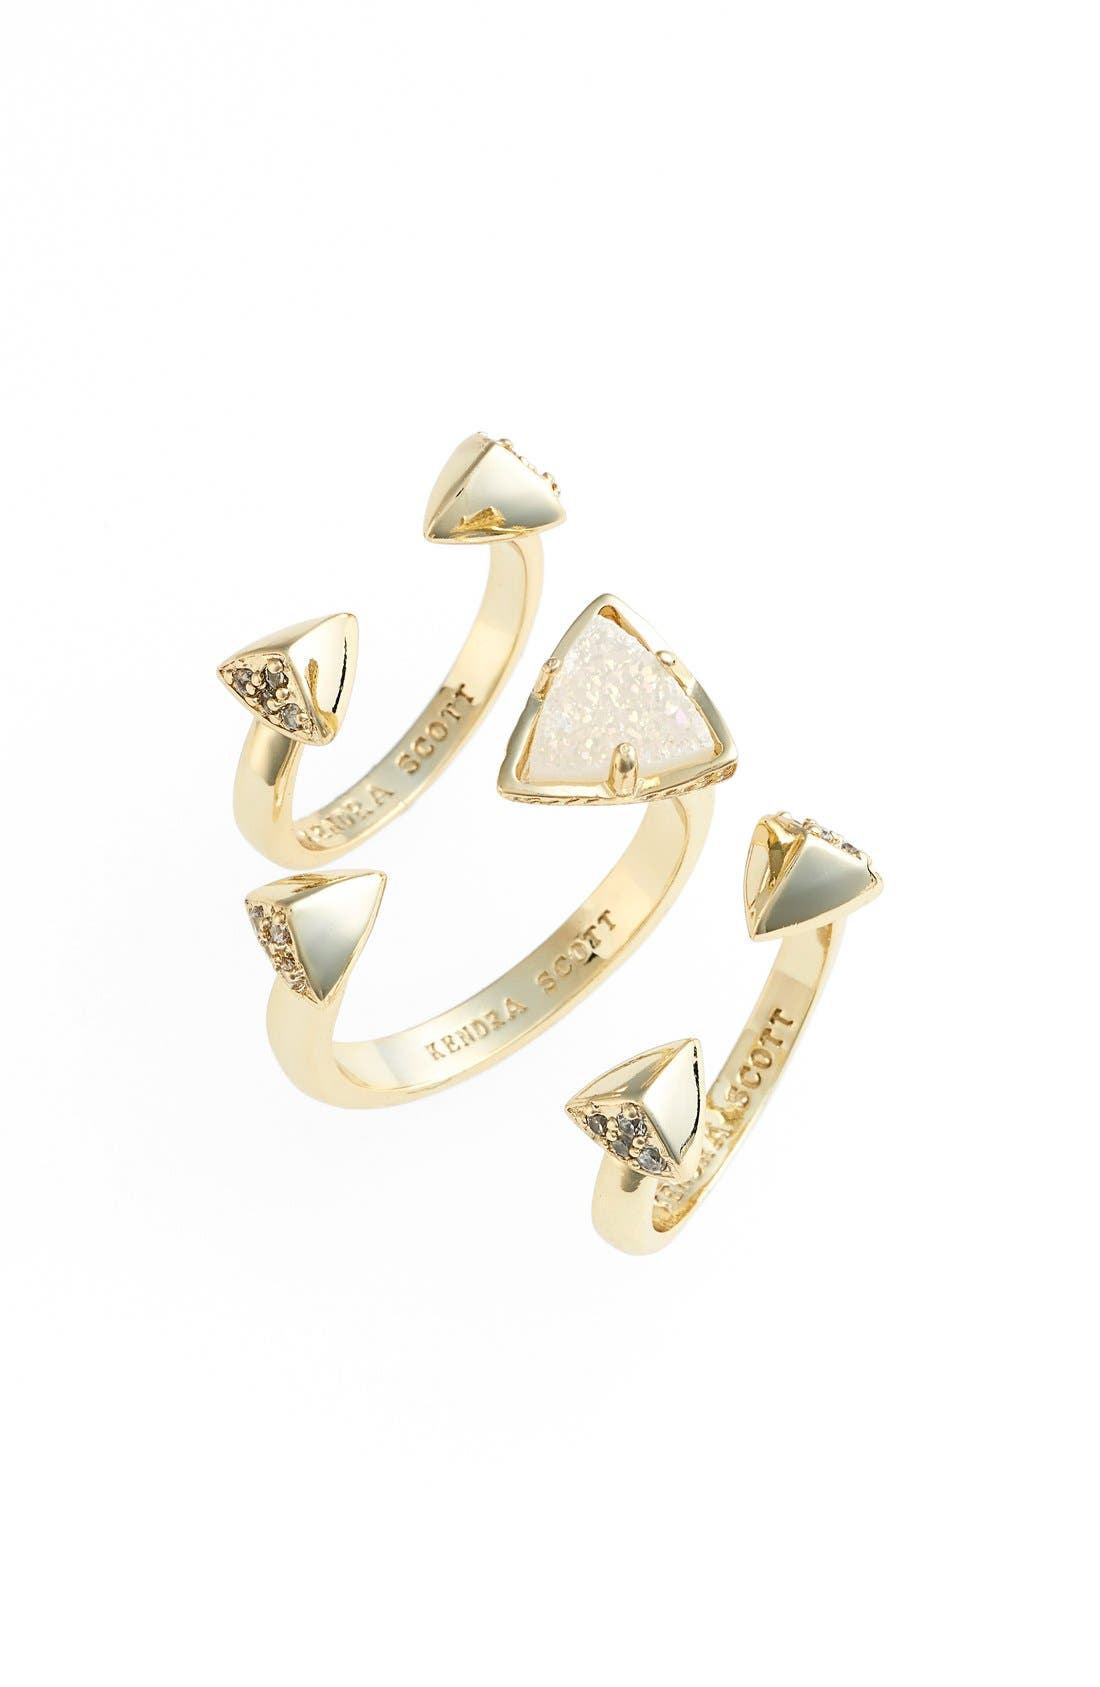 Main Image - Kendra Scott 'Brennan' Spiked Open Ring & Midi Rings (Set of 3)